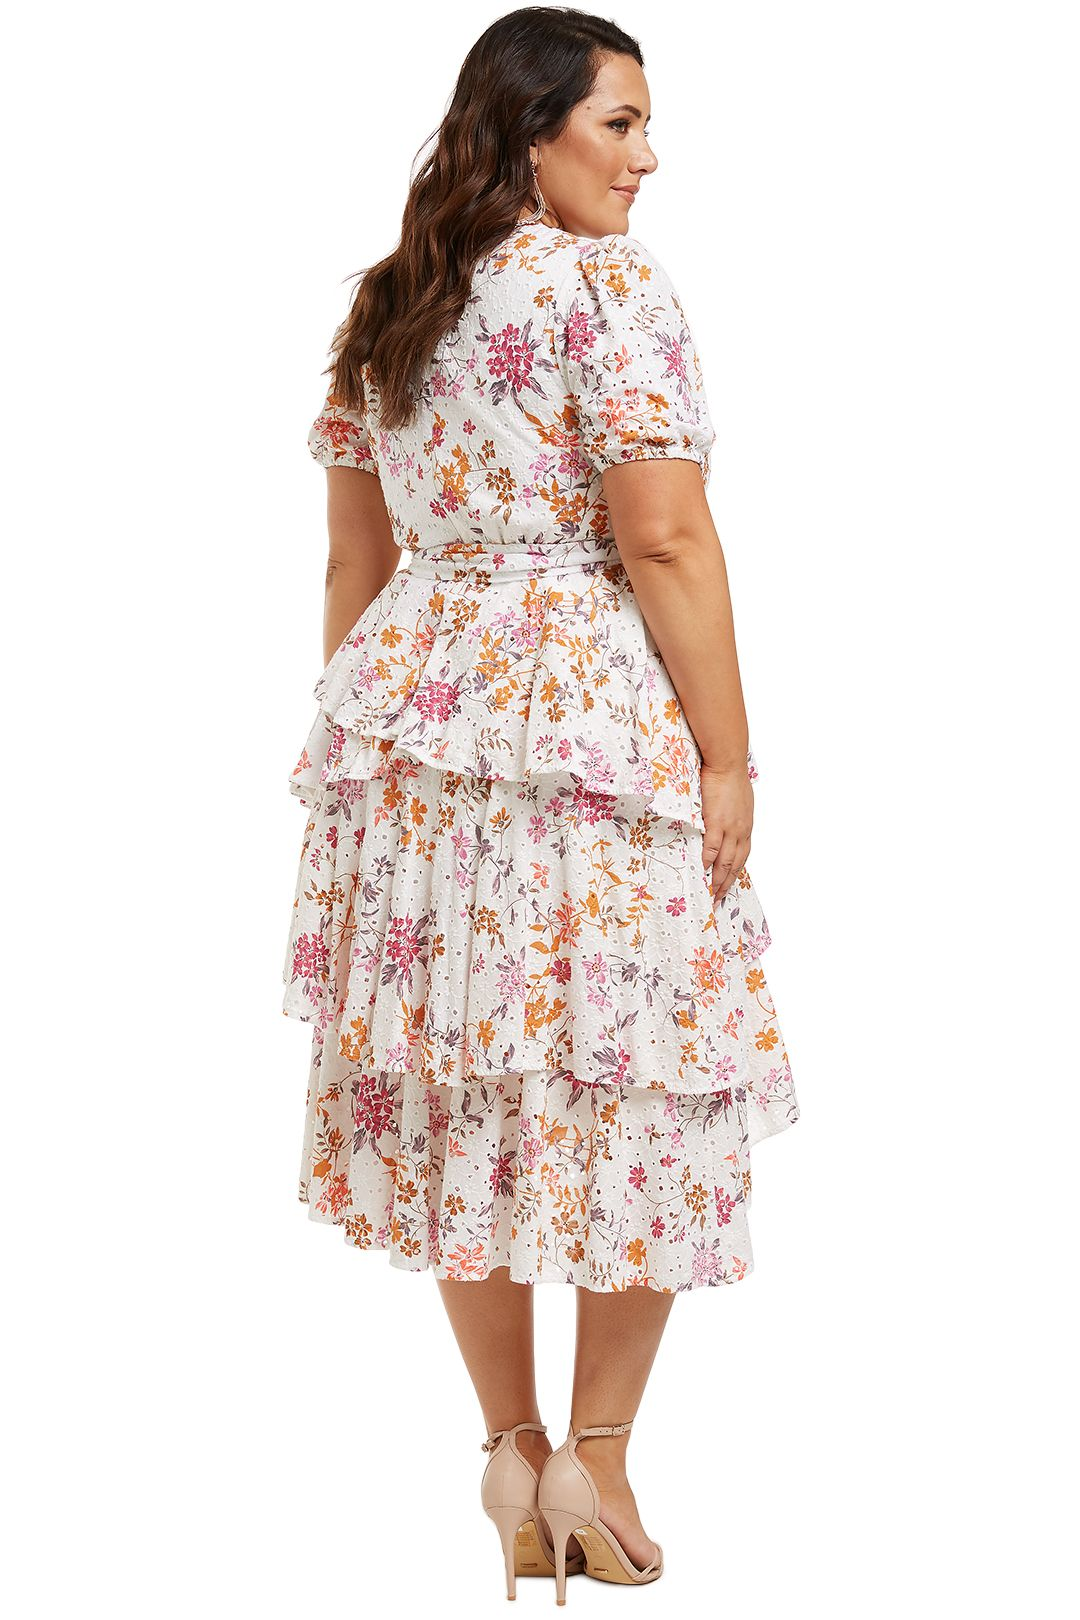 Talulah-Jasmine-Vines-Midi-Dress-Jasmine-Vines-Print-Back